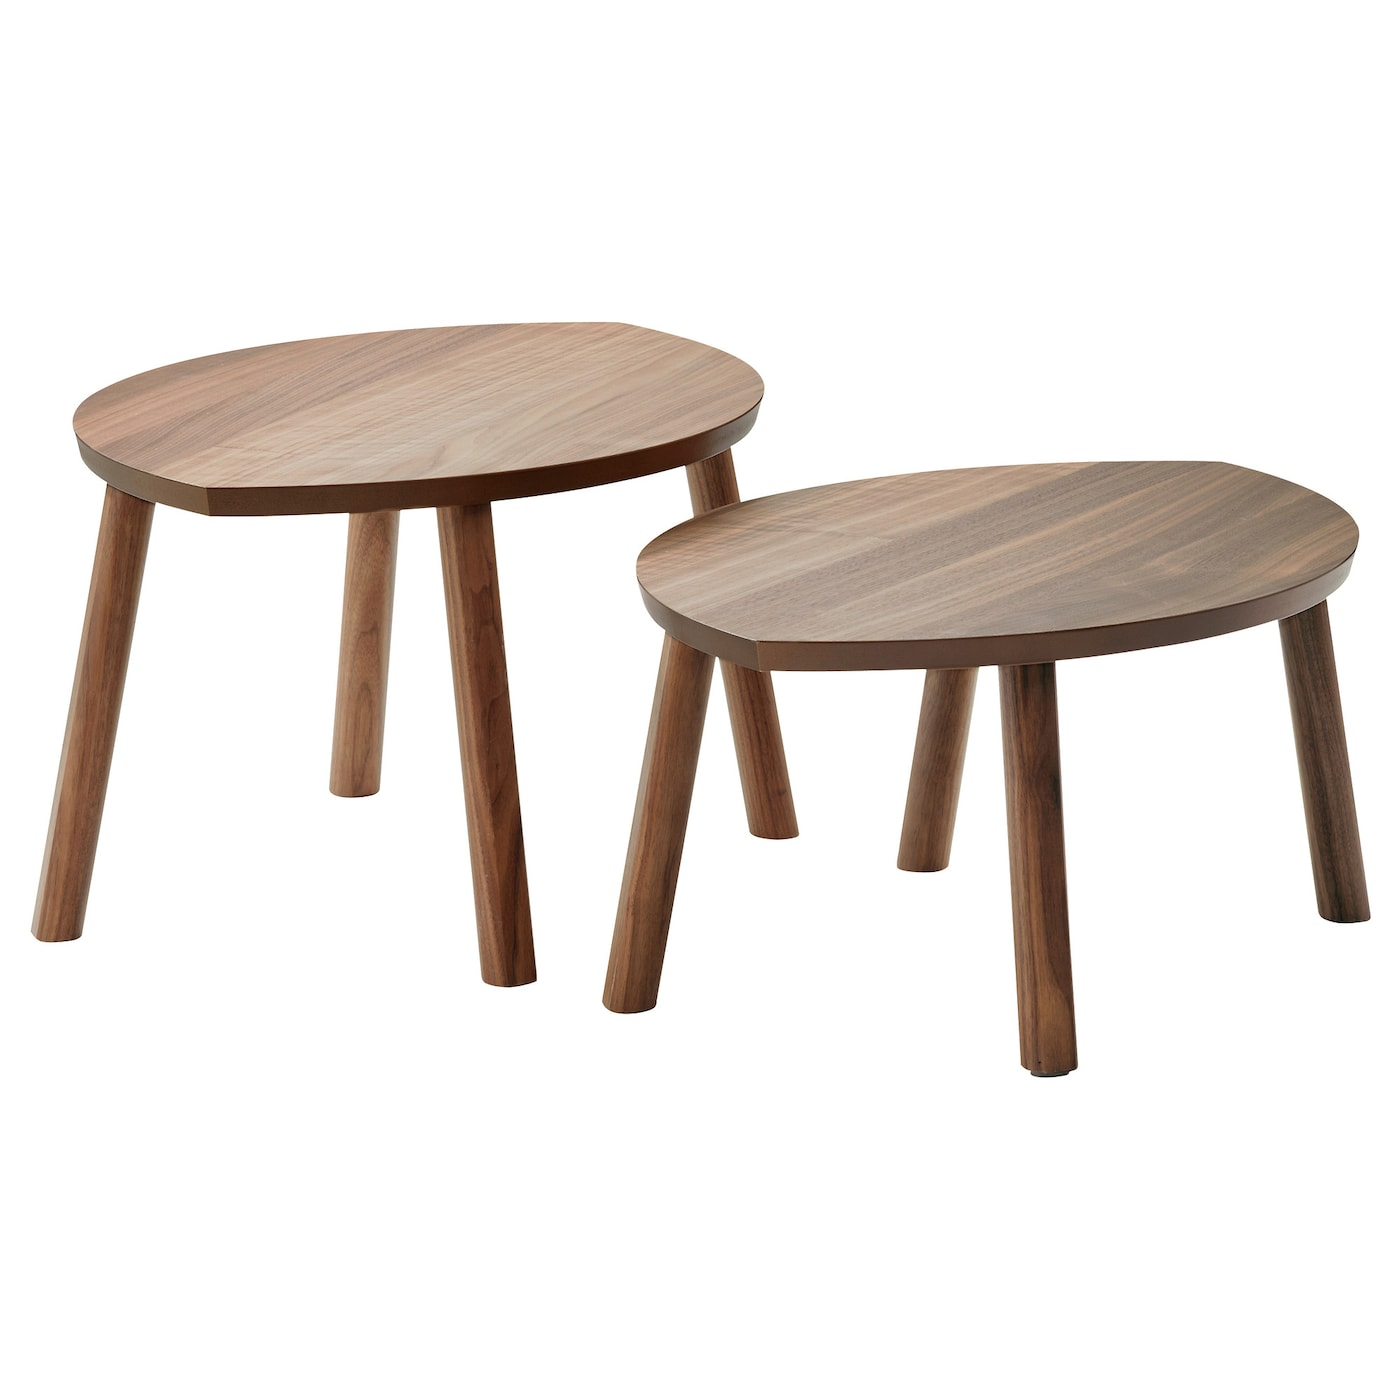 stockholm nest of tables set of 2 walnut veneer ikea. Black Bedroom Furniture Sets. Home Design Ideas